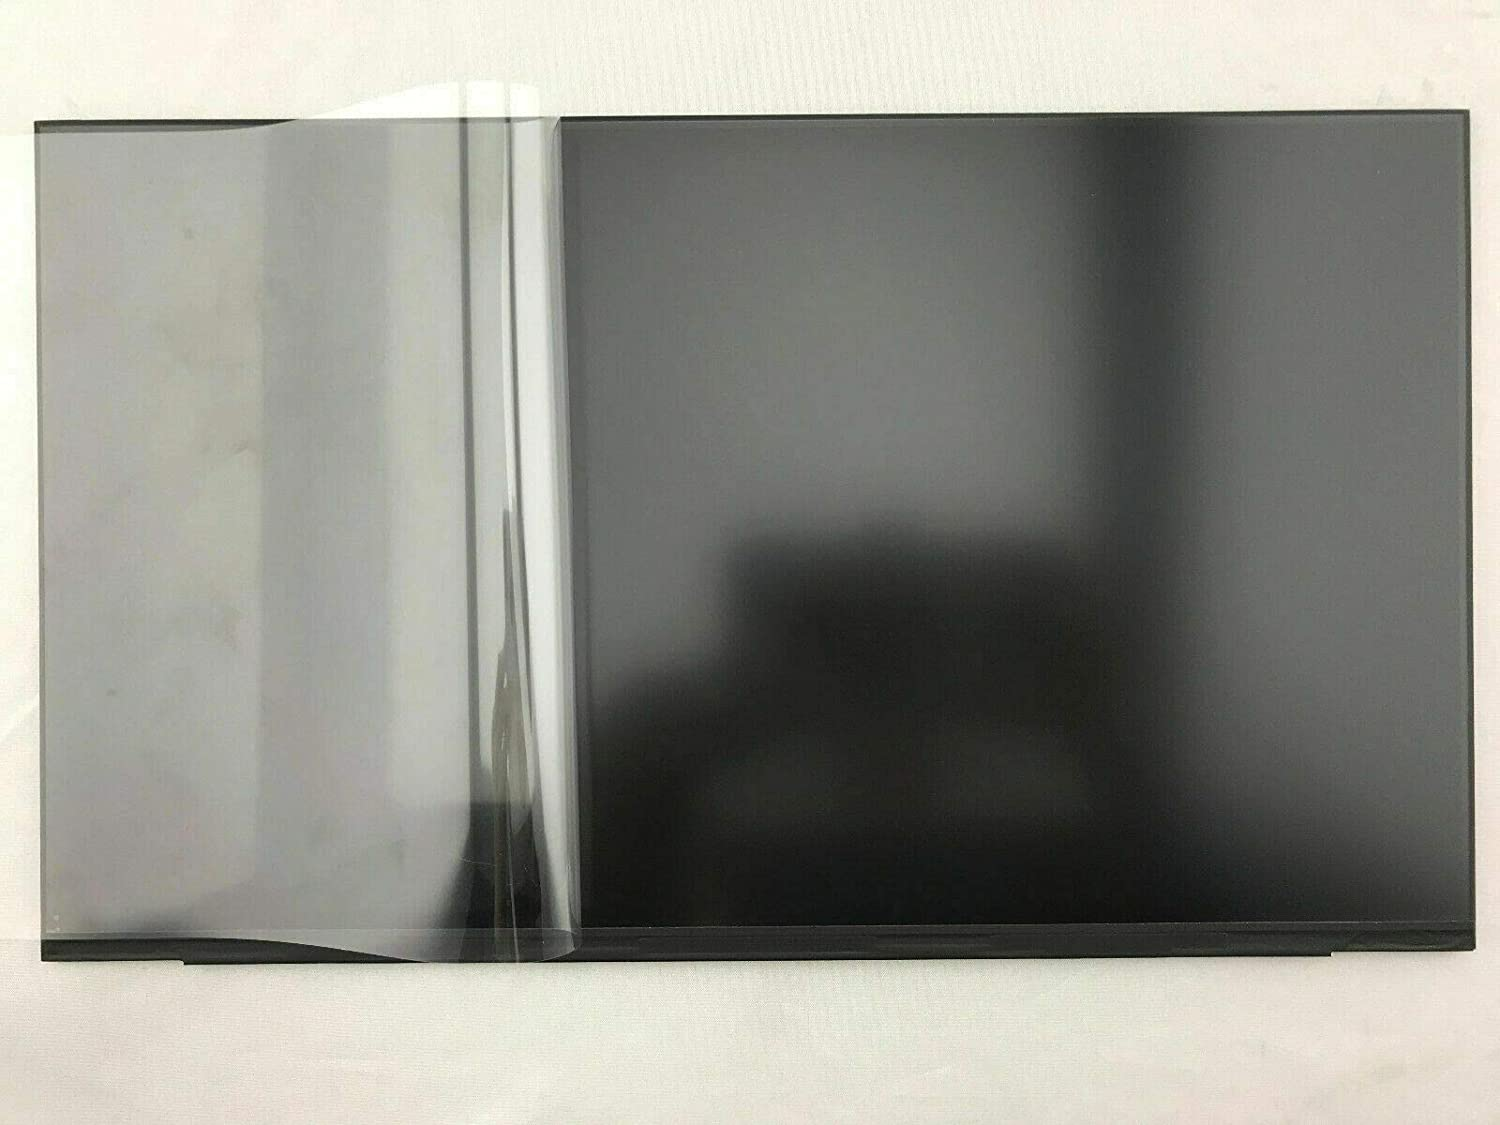 """New 15.6"""" LCD Screen Display with on-Cell Touch For Dell Inspiron 15 5584 NM22V 1XPKT RRWV9"""